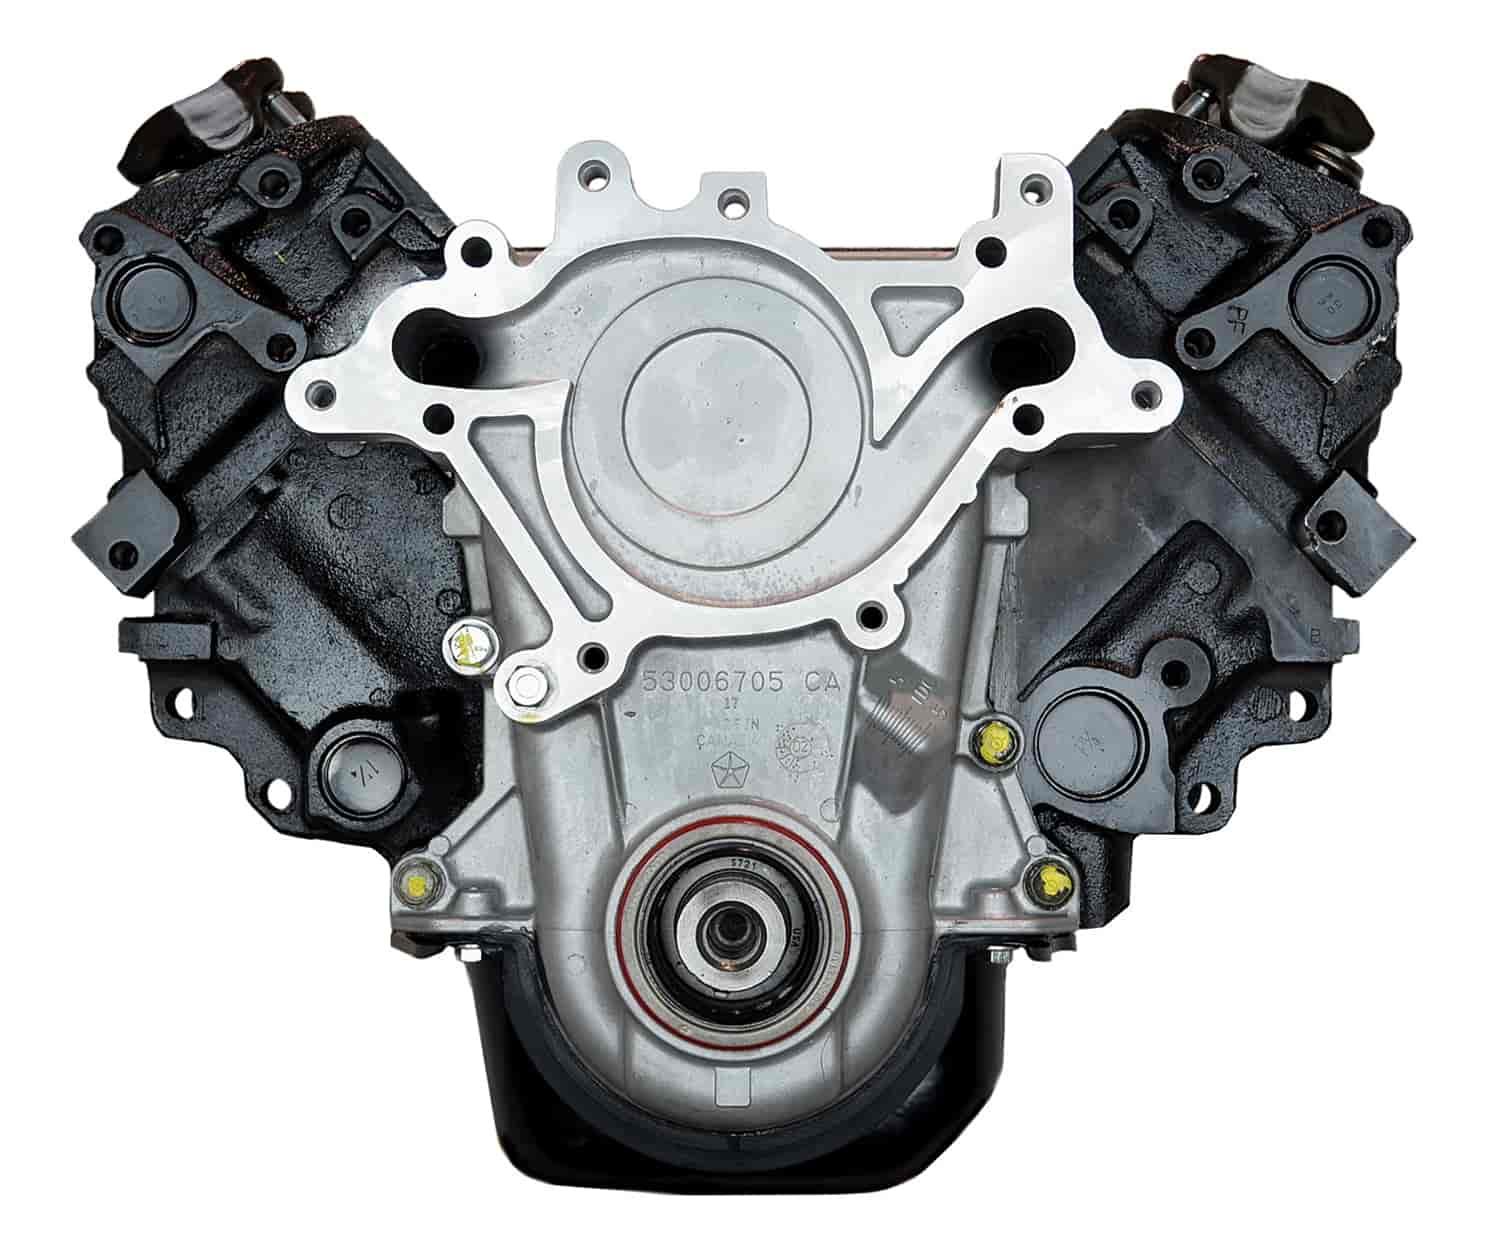 ATK Engines Remanufactured Crate Engine for 1993-2001 Dodge/Jeep with  318ci/5 2L V8